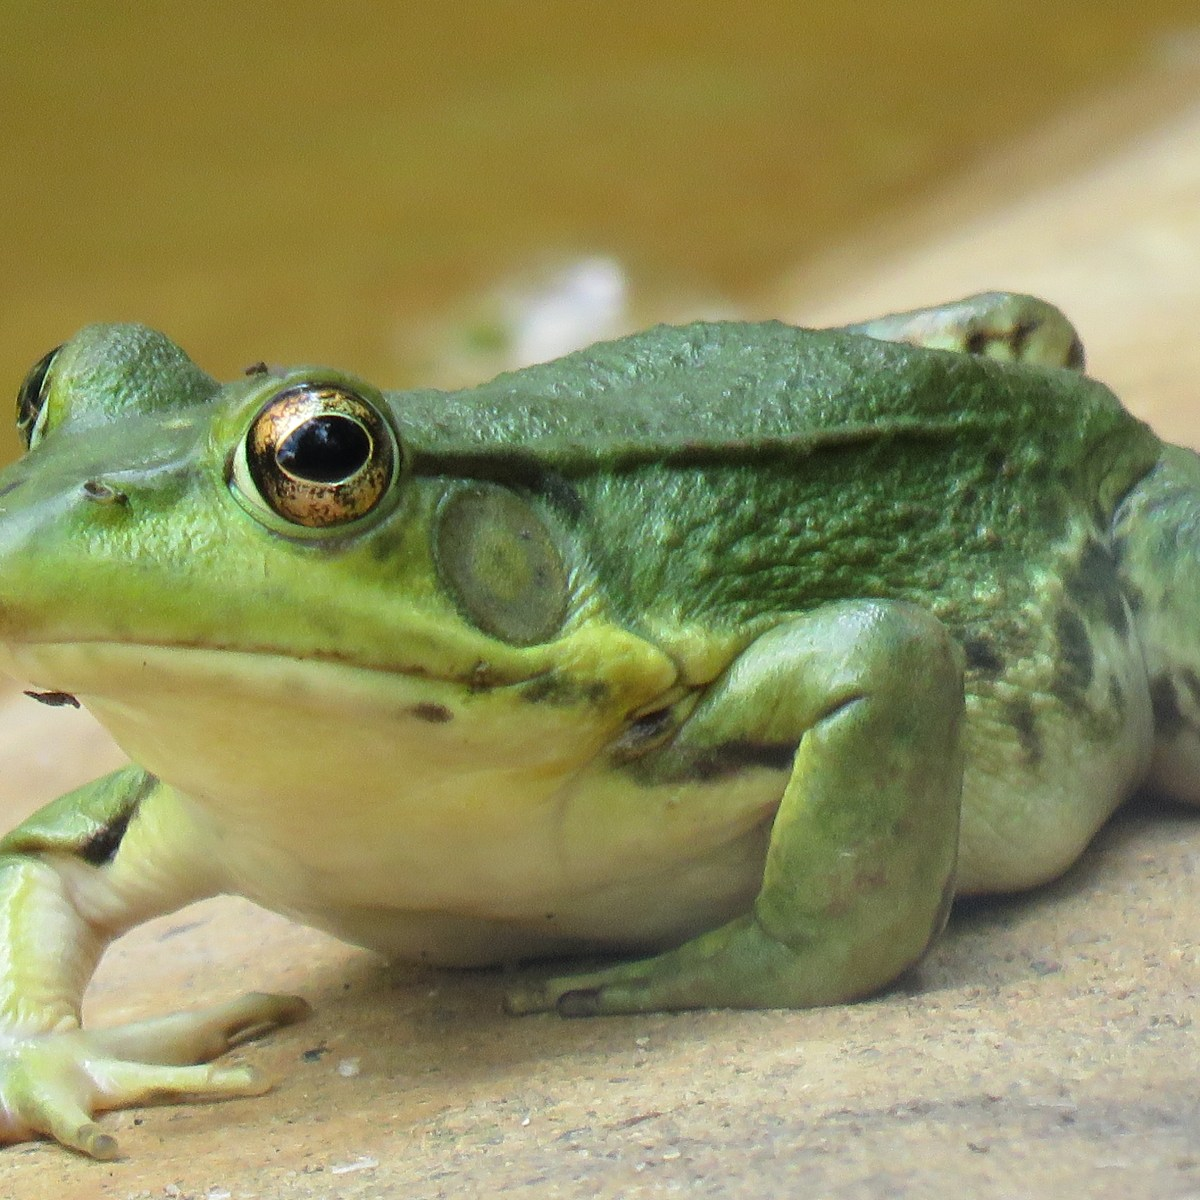 A close-up photo of a large green frog